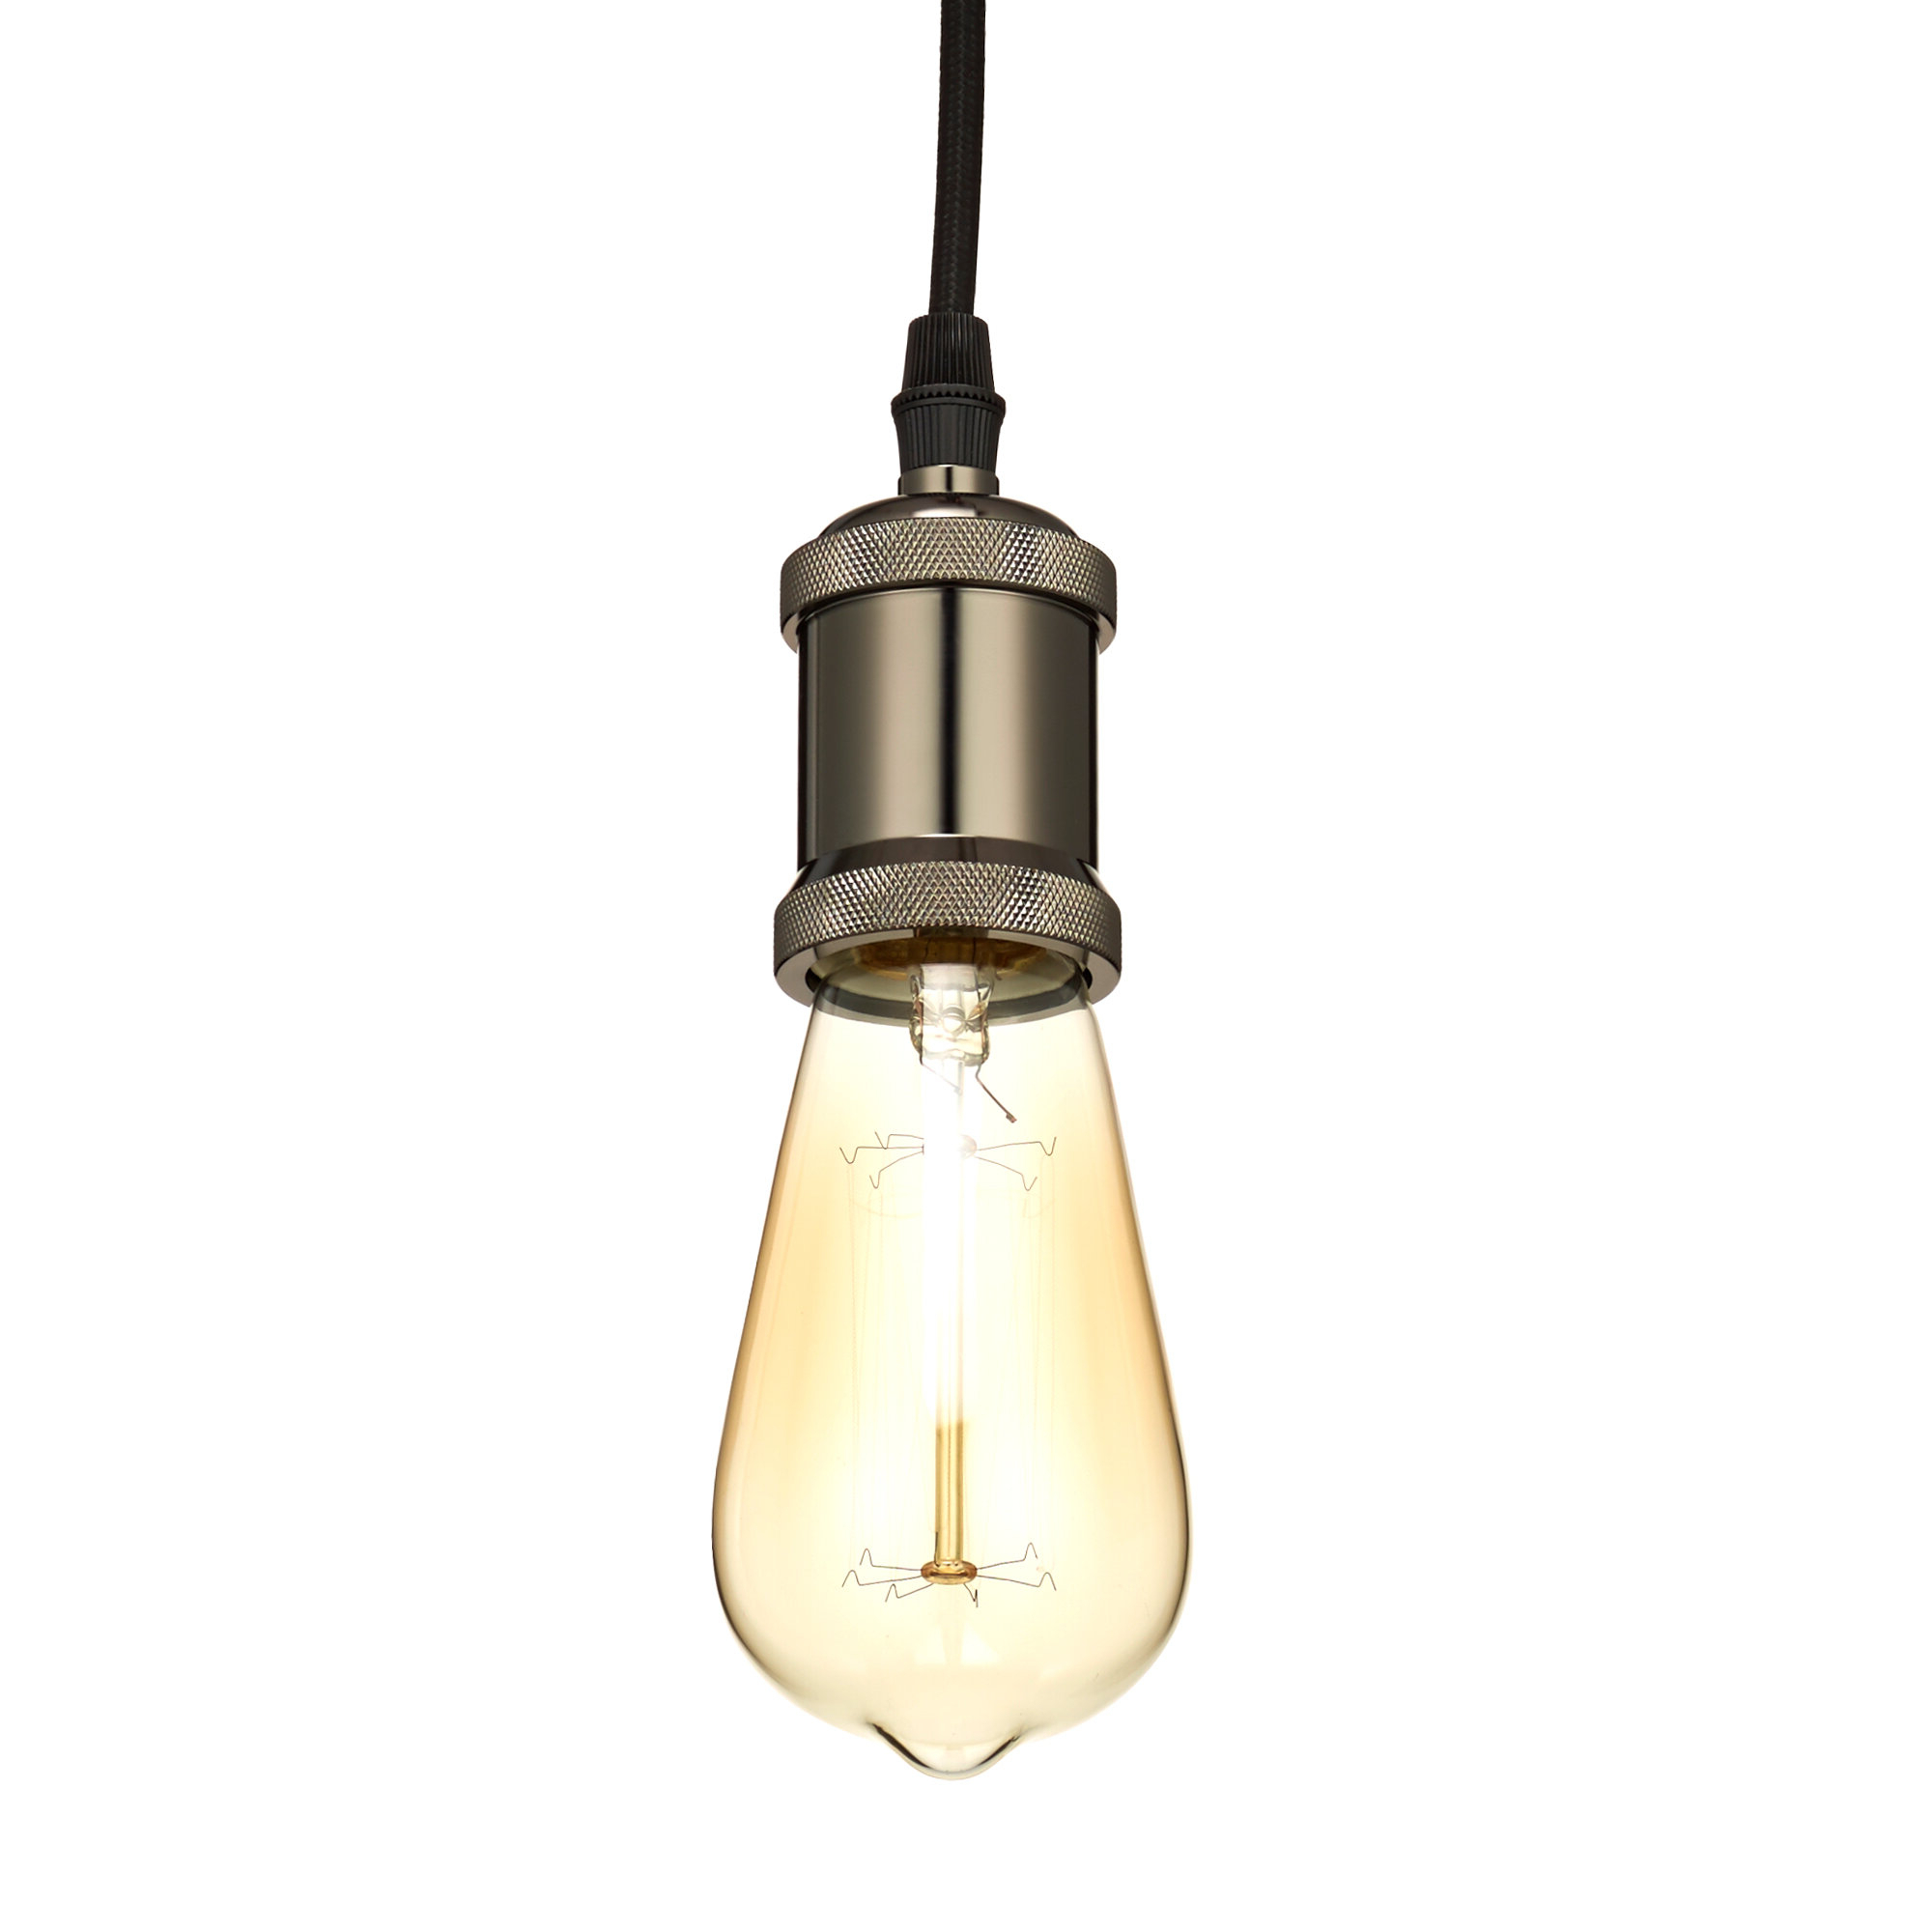 2020 Bryker 1 Light Single Bulb Pendants In Norbert Socket 1 Light Bulb Pendant (View 1 of 20)